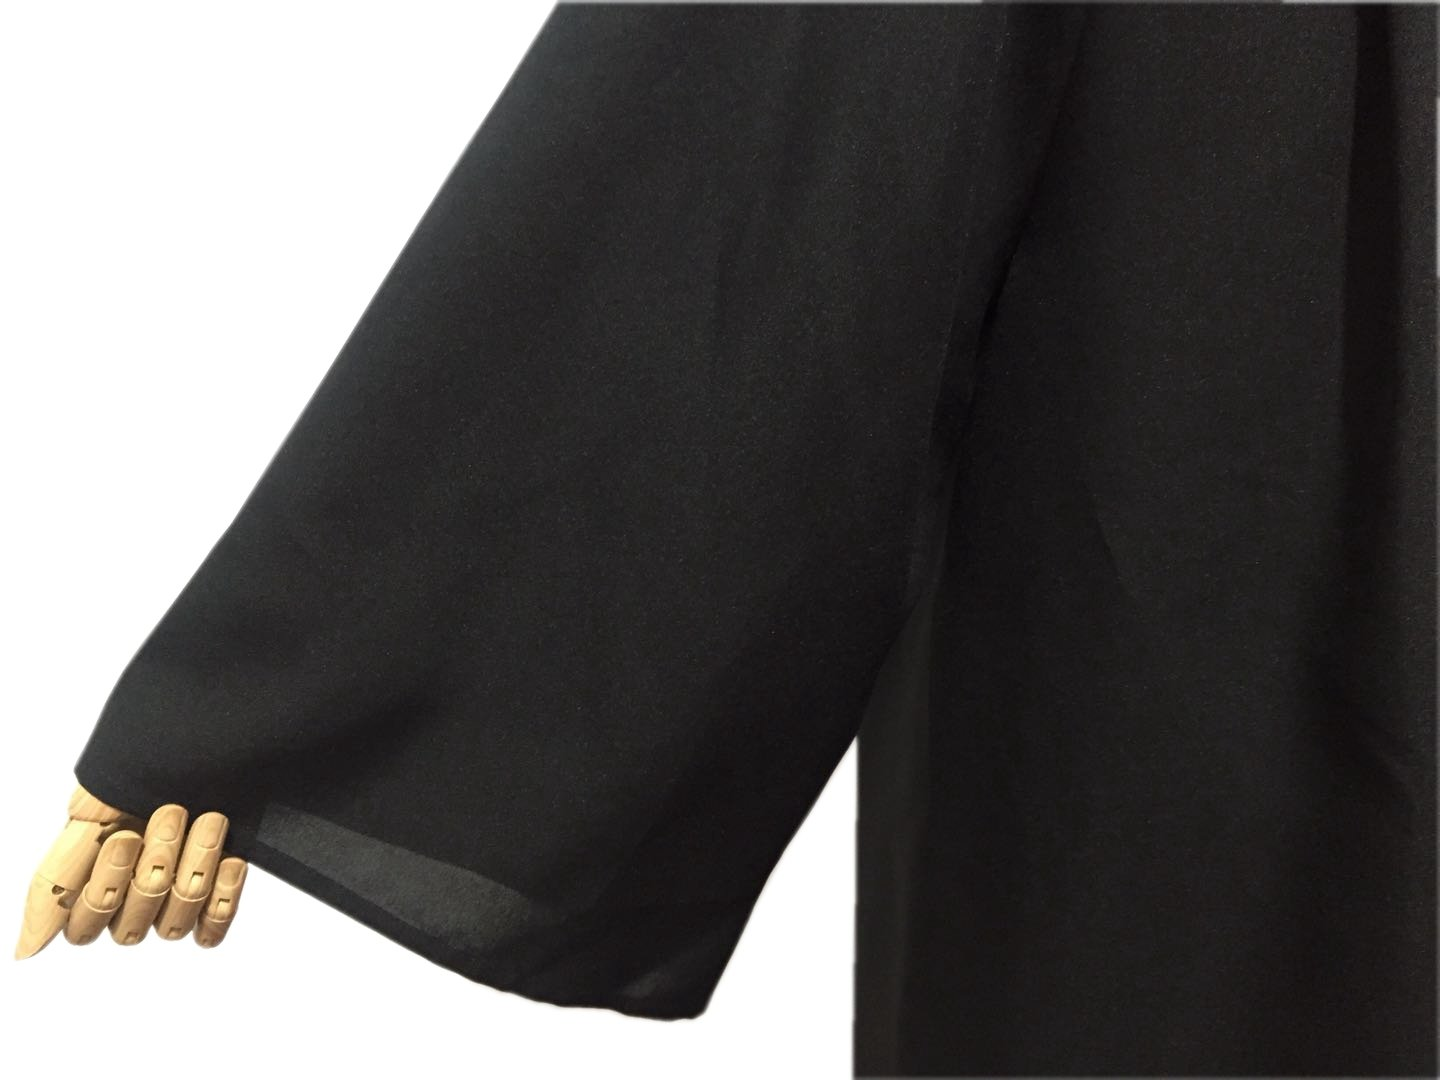 Leishungao Adult Black Choir Robe Matte Finish for Choir Clergy ReligiousWearing Height 5'9''-5'11''FF by Leishungao (Image #2)